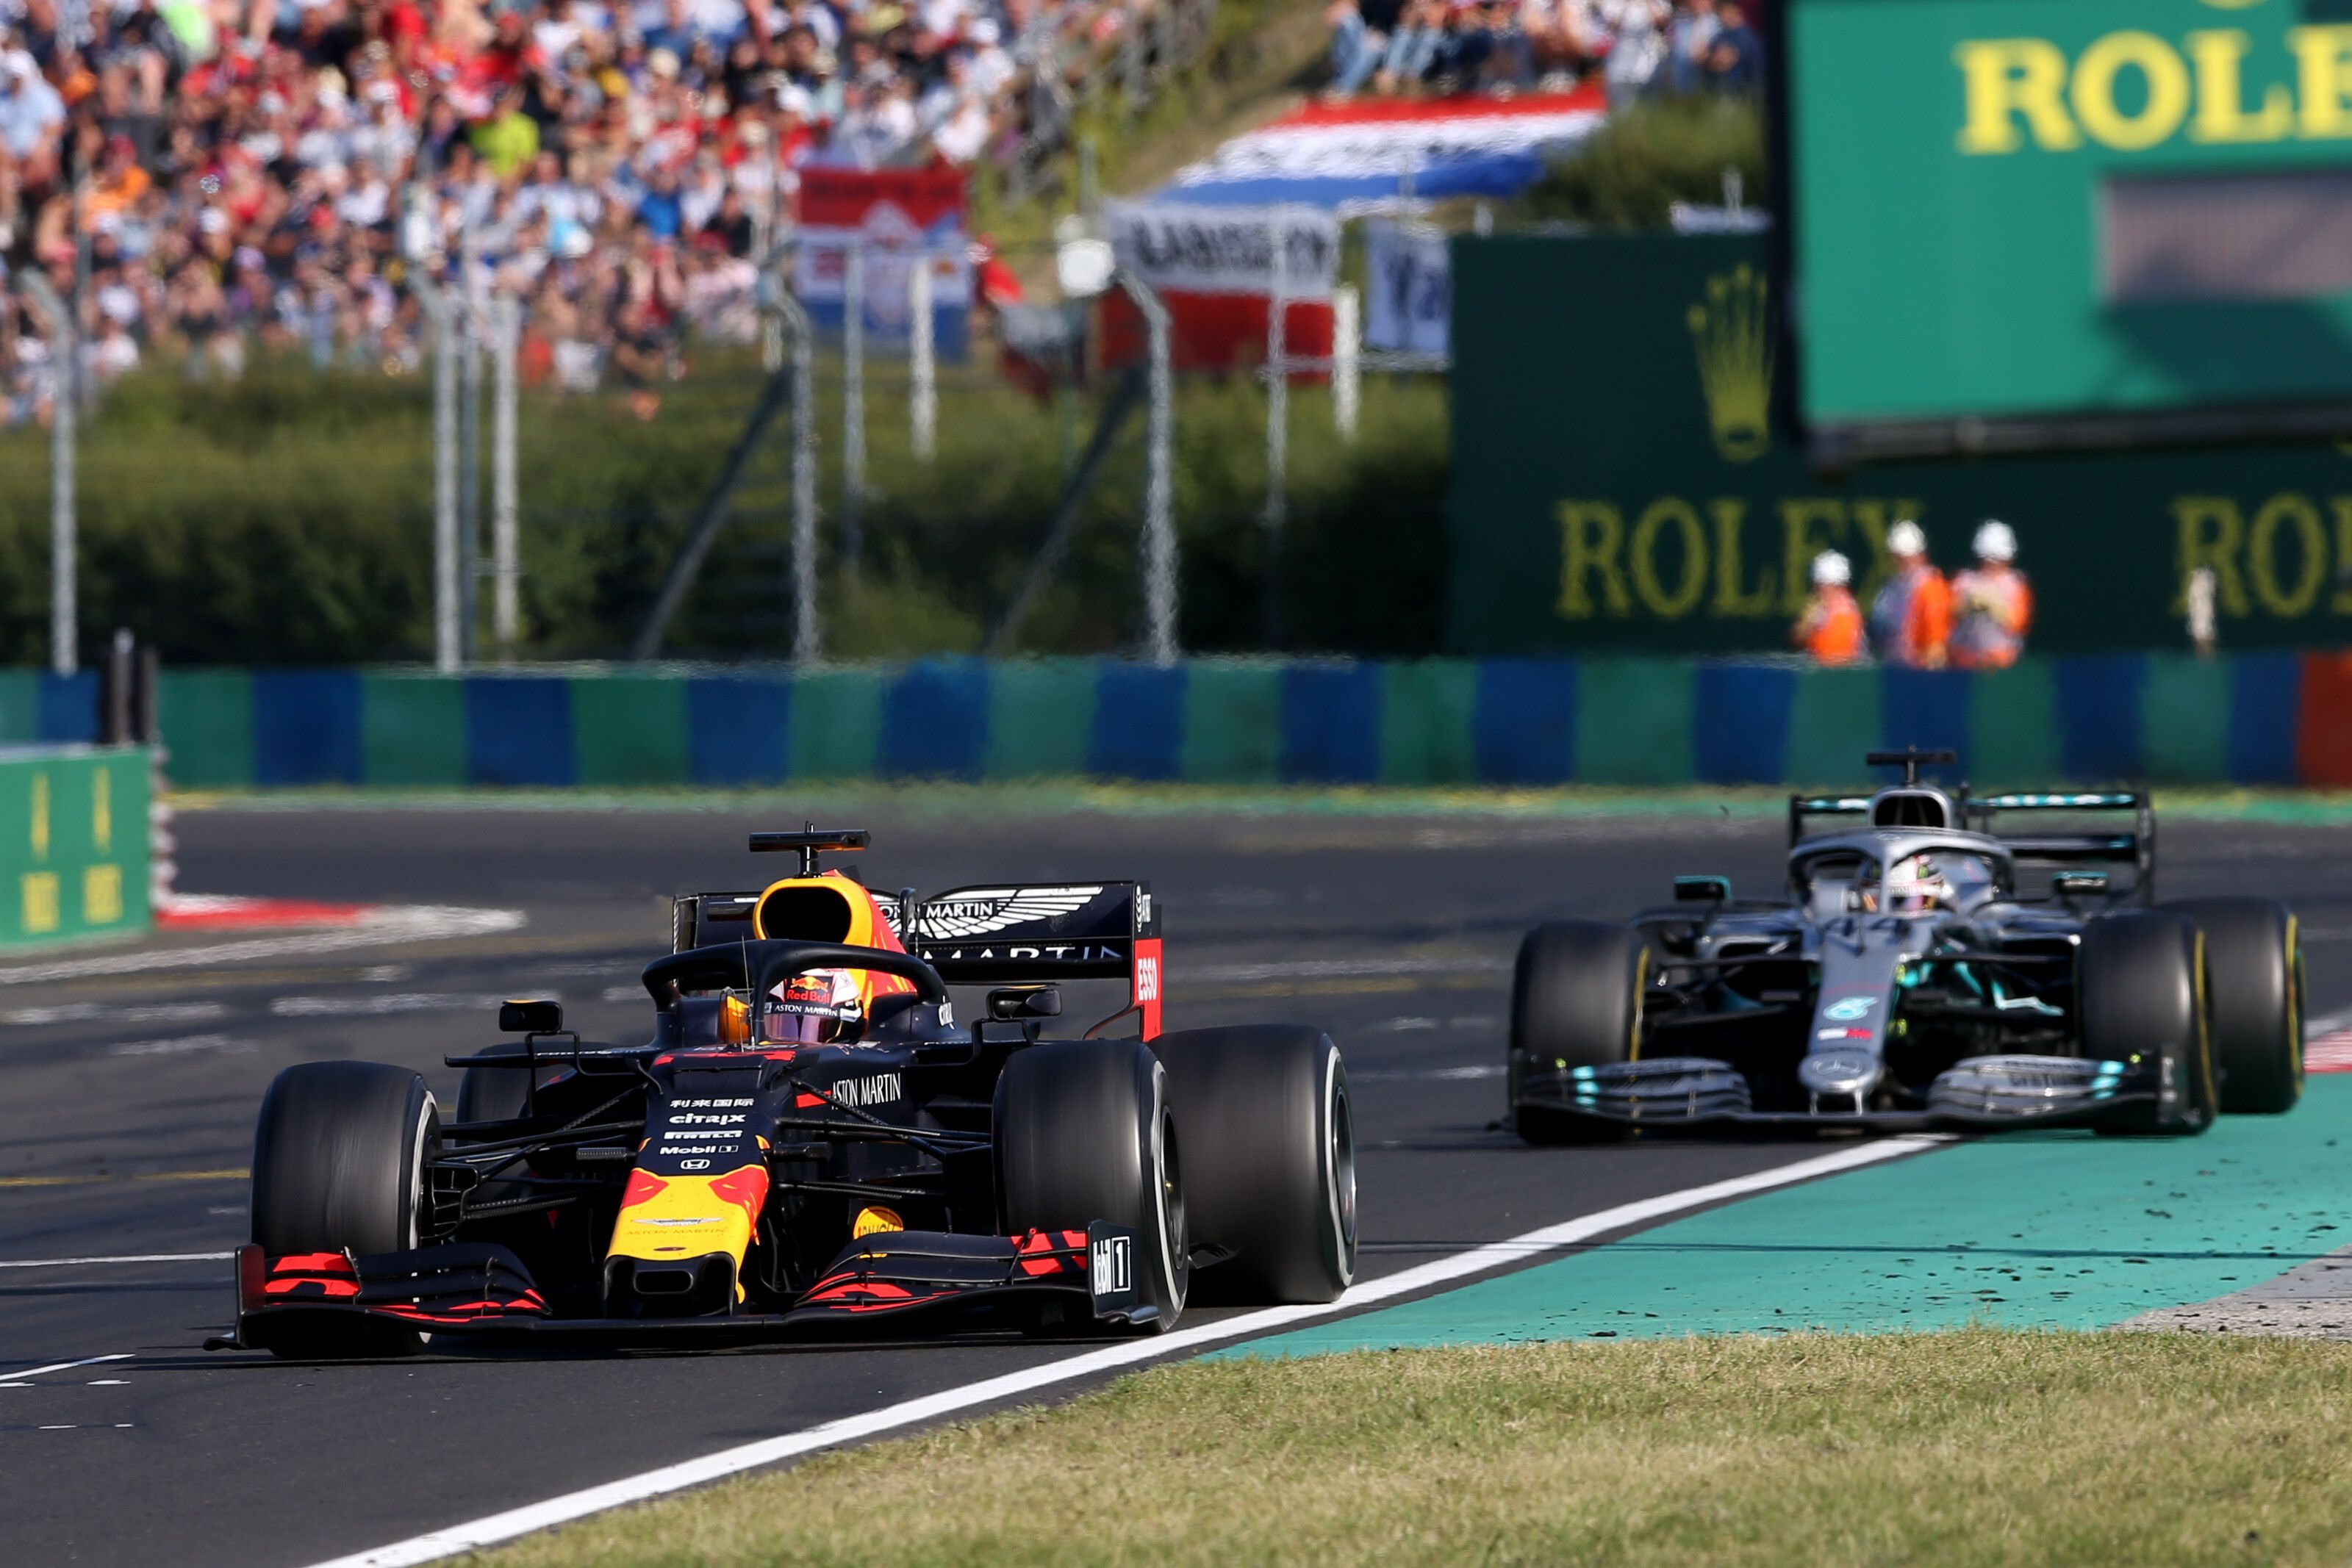 Lewis Hamilton, Red Bull Racing, F1, Max Verstappen